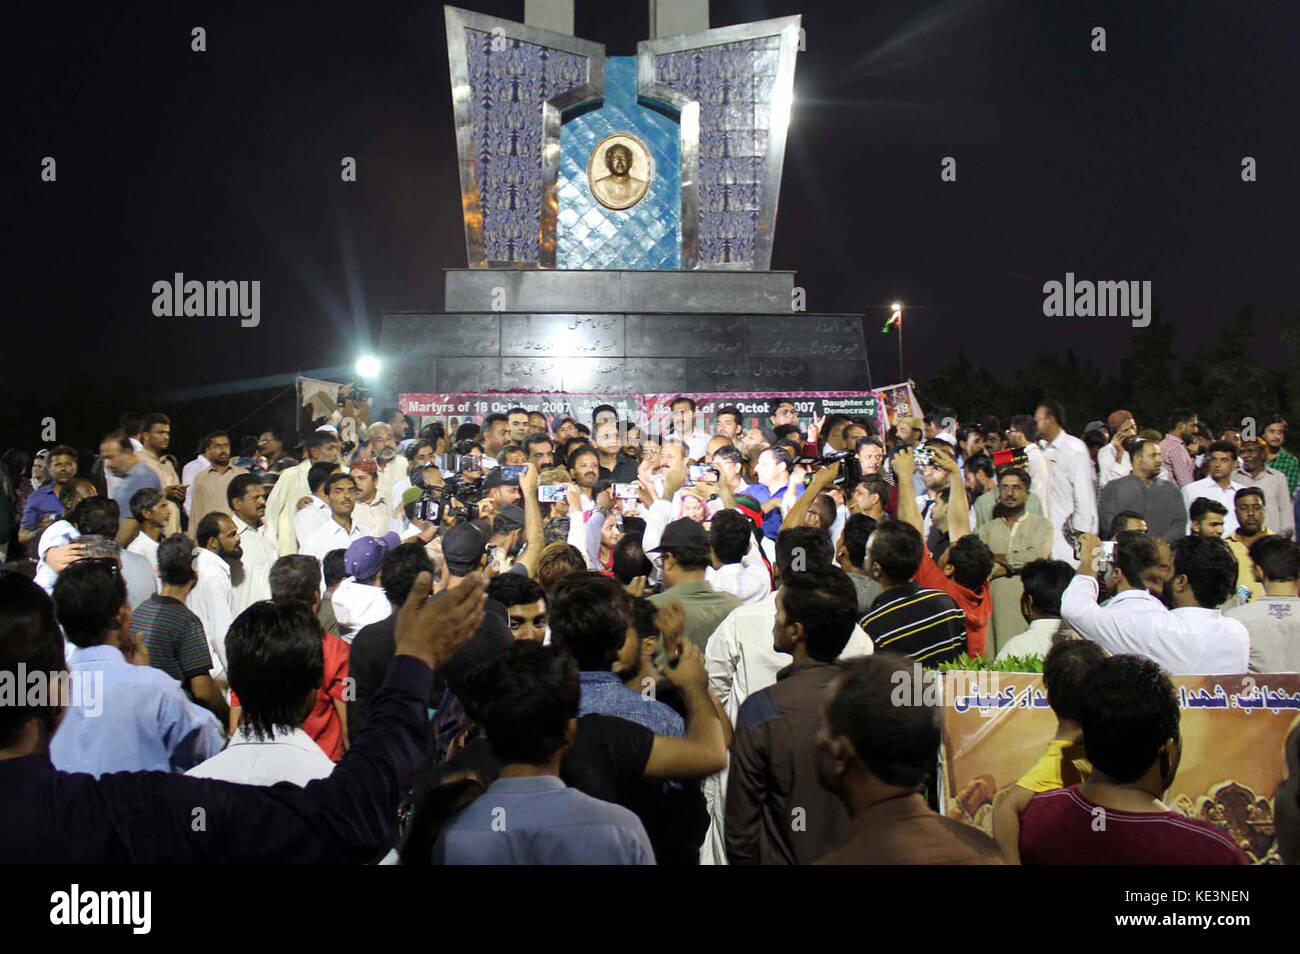 Activists and leaders of Peoples Party gathering at monument on Karsaz Road in reminiscence of political workers - Stock Image